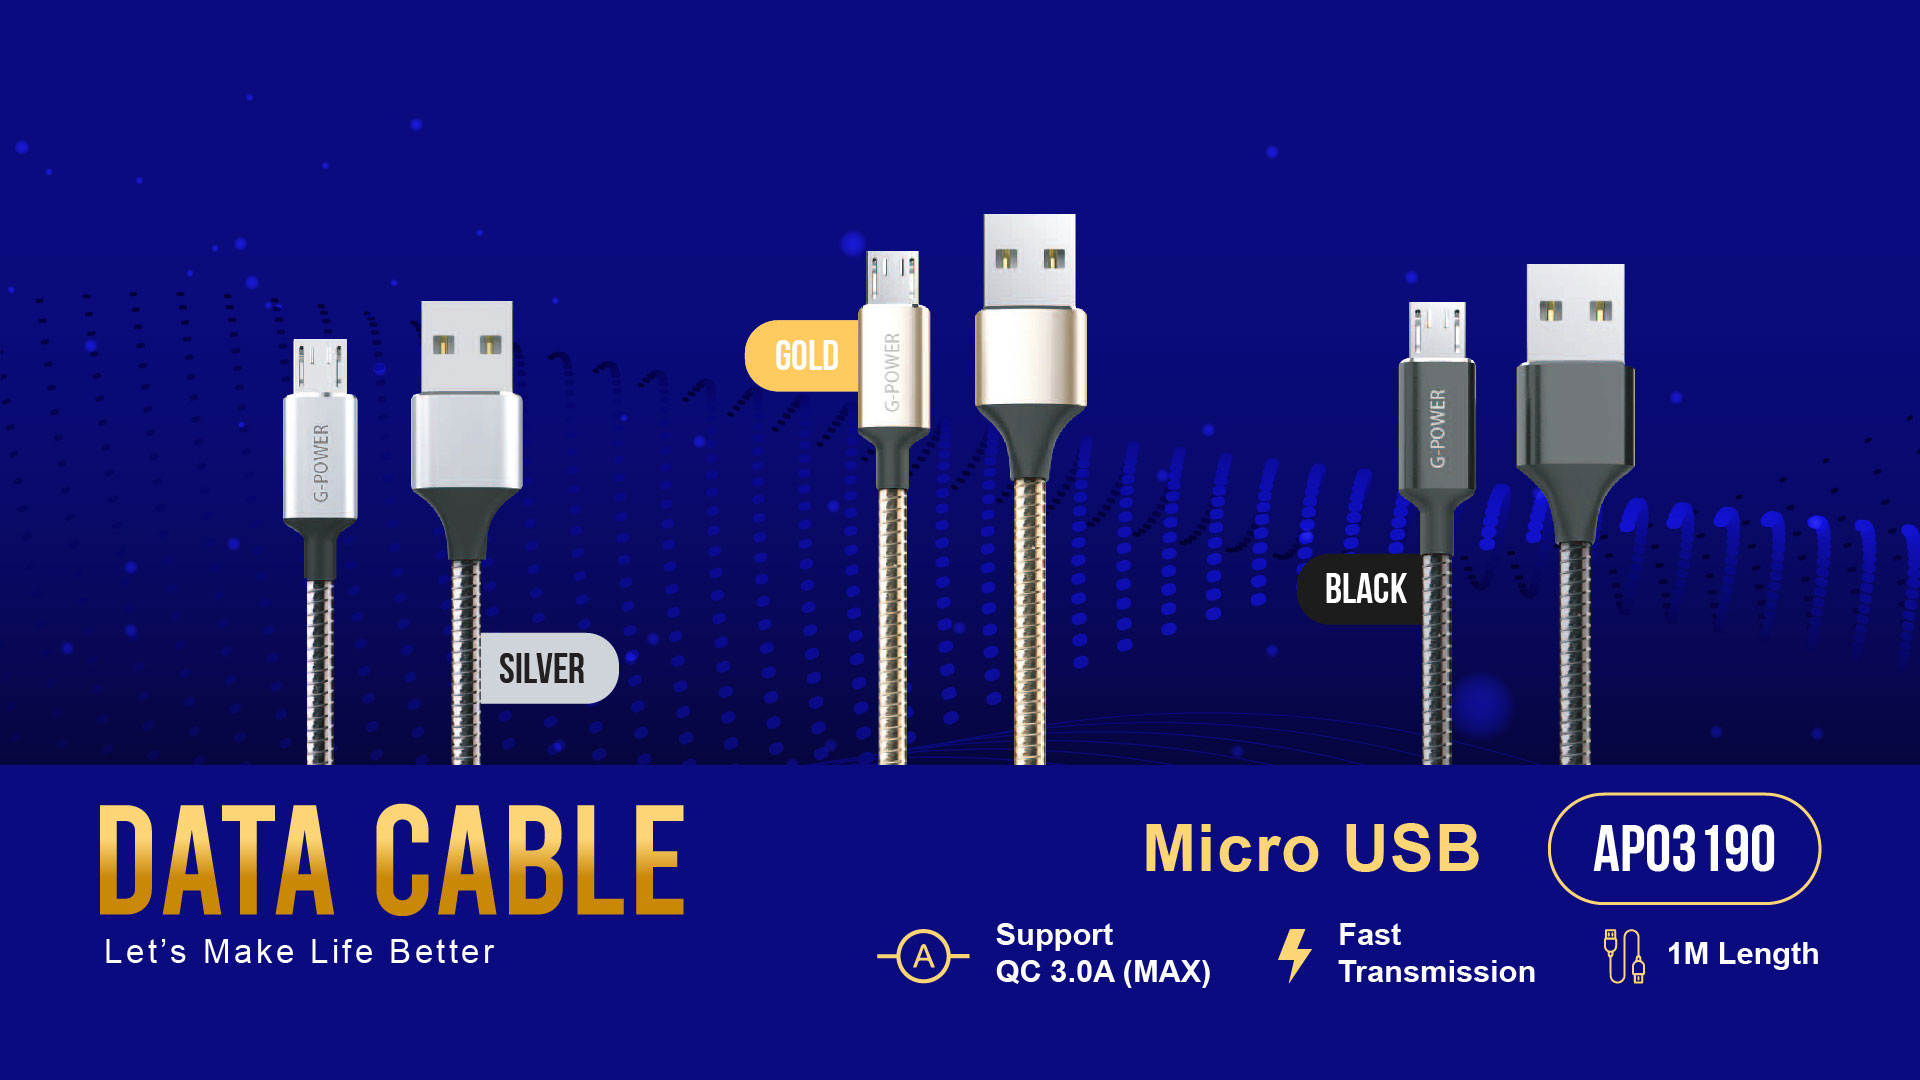 altr-ultimate-ecommerce_gpower_wdd_home_graphic_main-slider_data-cable-ap03190-color-variants.jpg